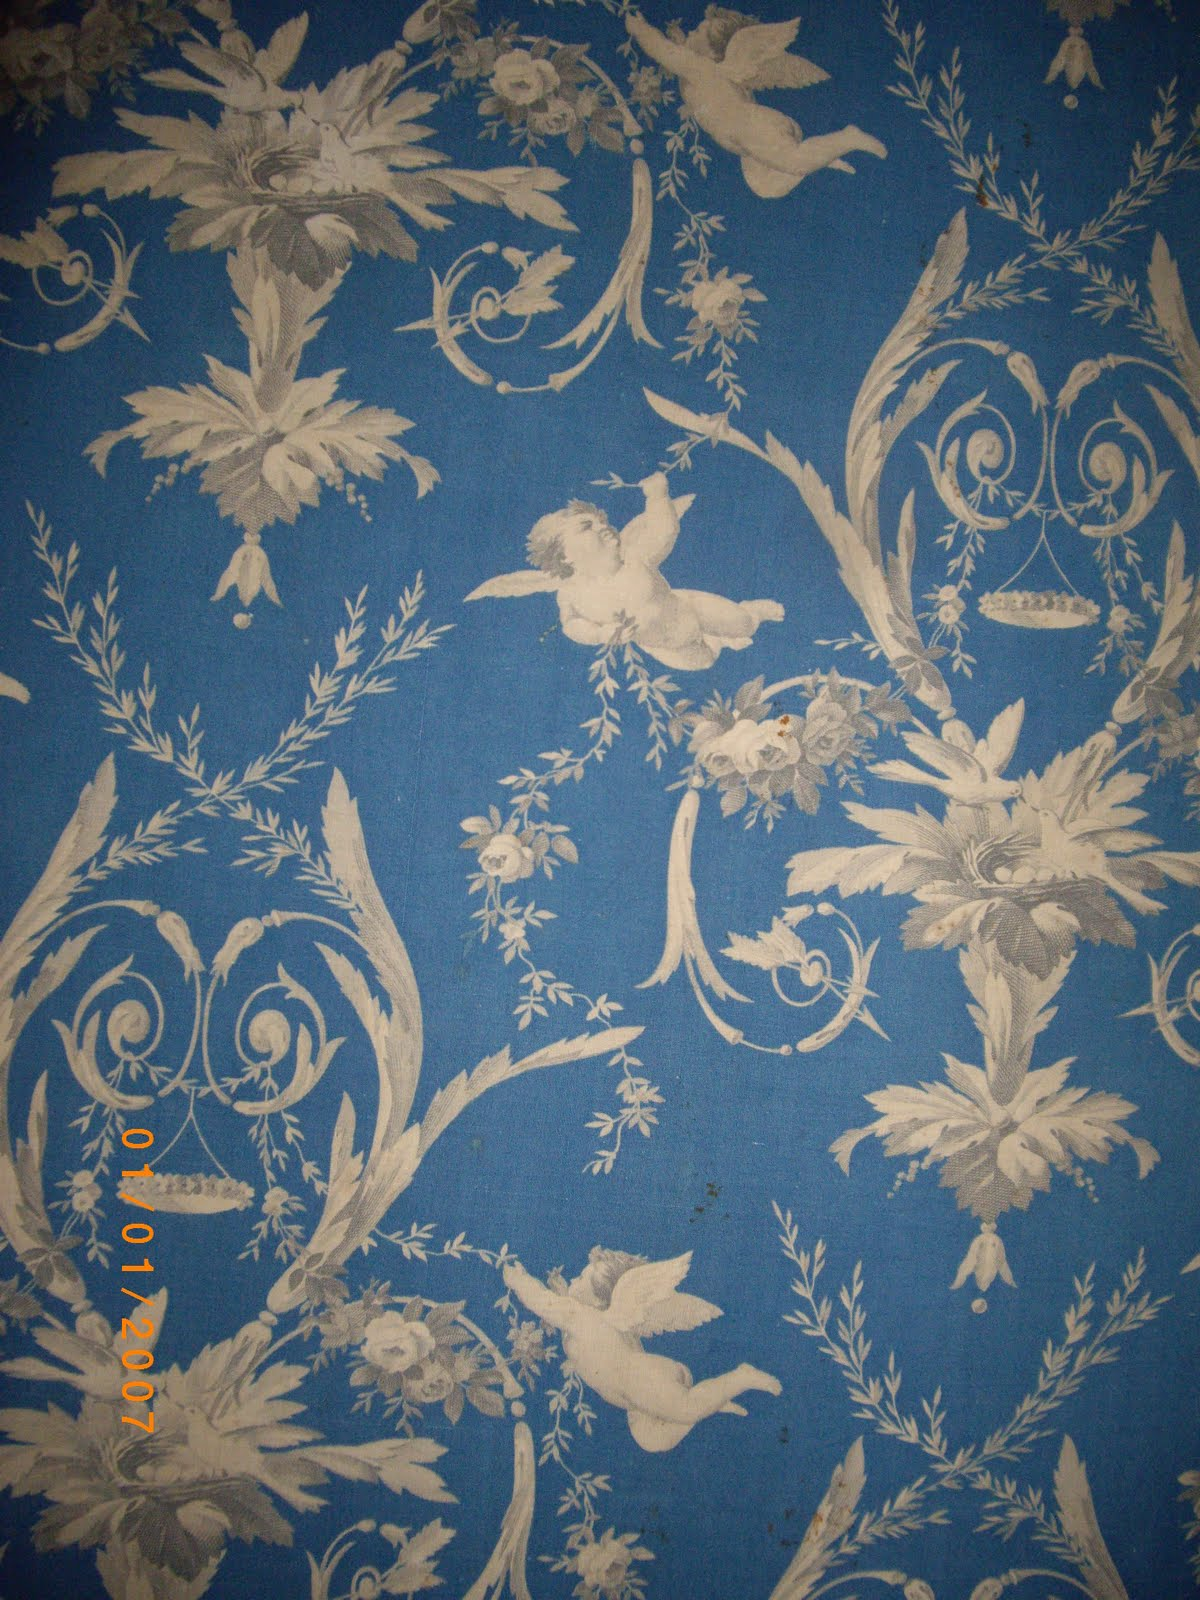 Wallpaper designs by georgina fleur shanley ormesby hall for Wallpaper design for hall